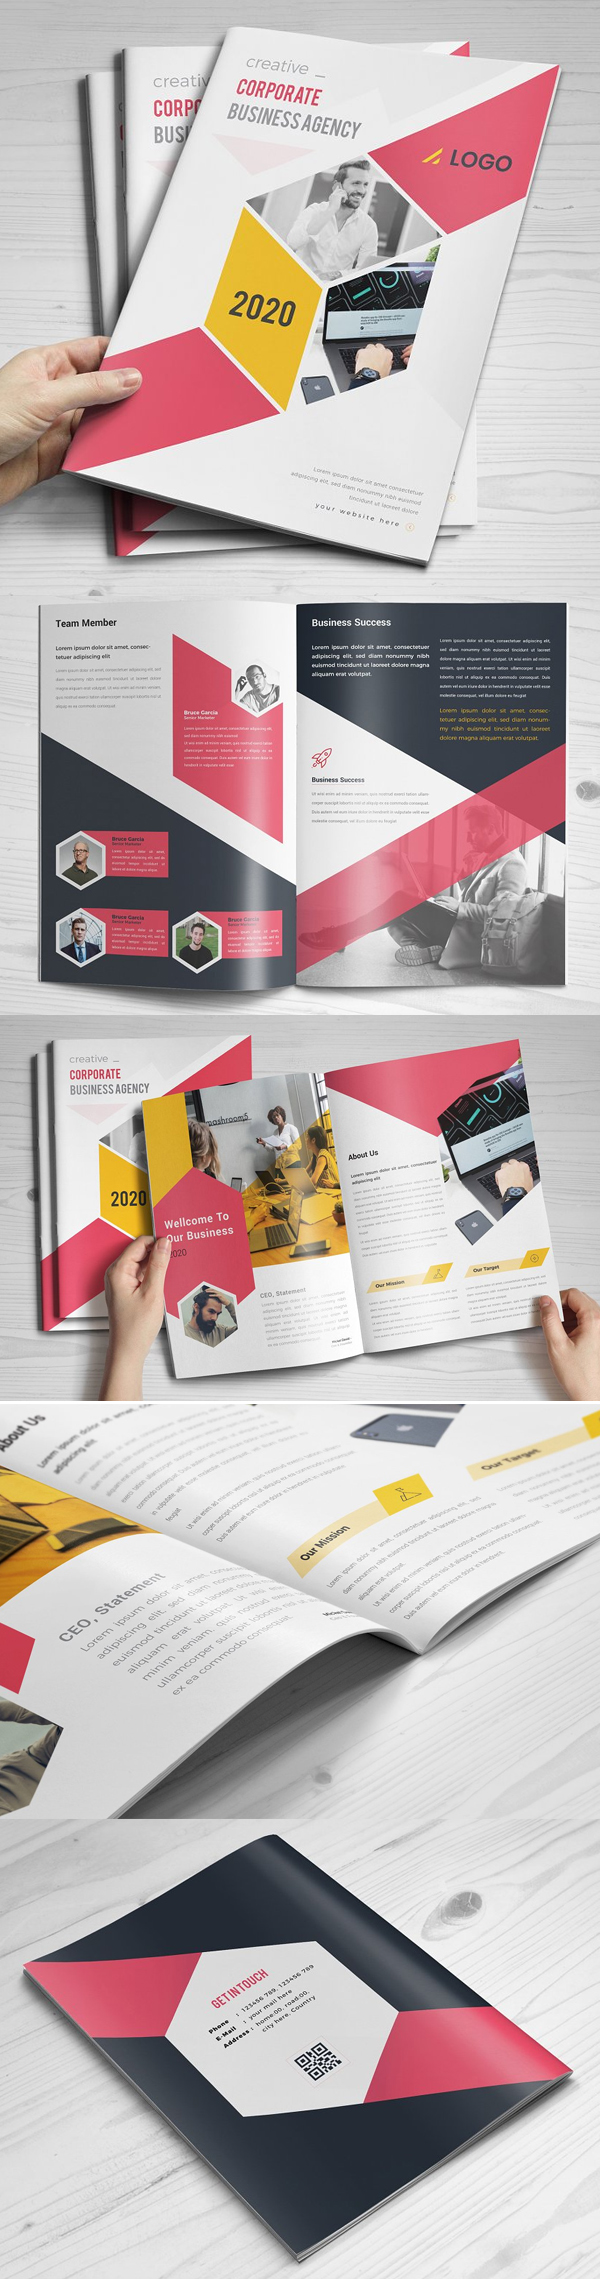 Awesome Business Brochure Template